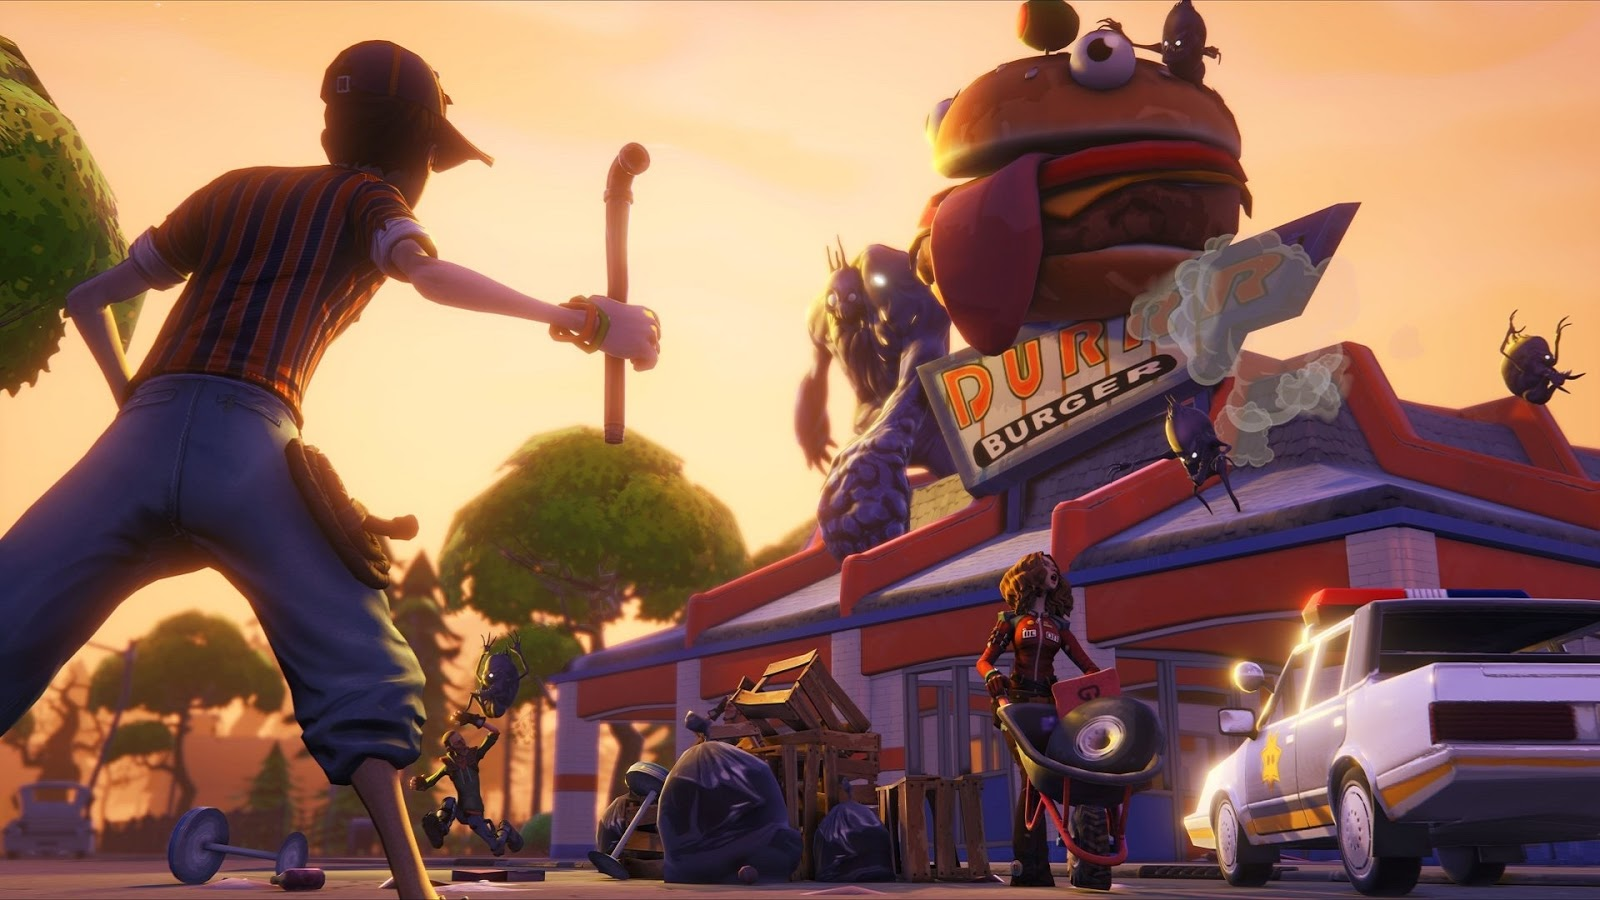 Download Fortnite HD Wallpapers - Read games review, play online games & download games wallpapers